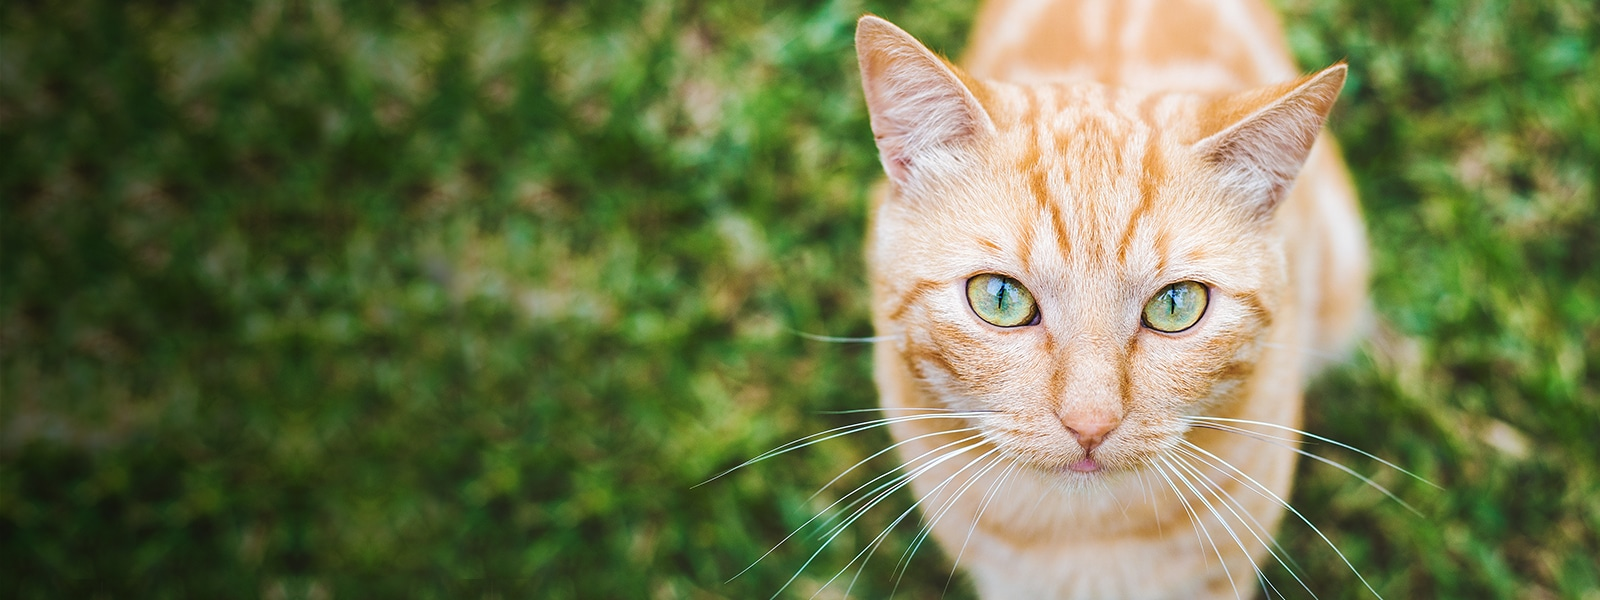 Feline Heartworm Disease: Fact or Fiction?